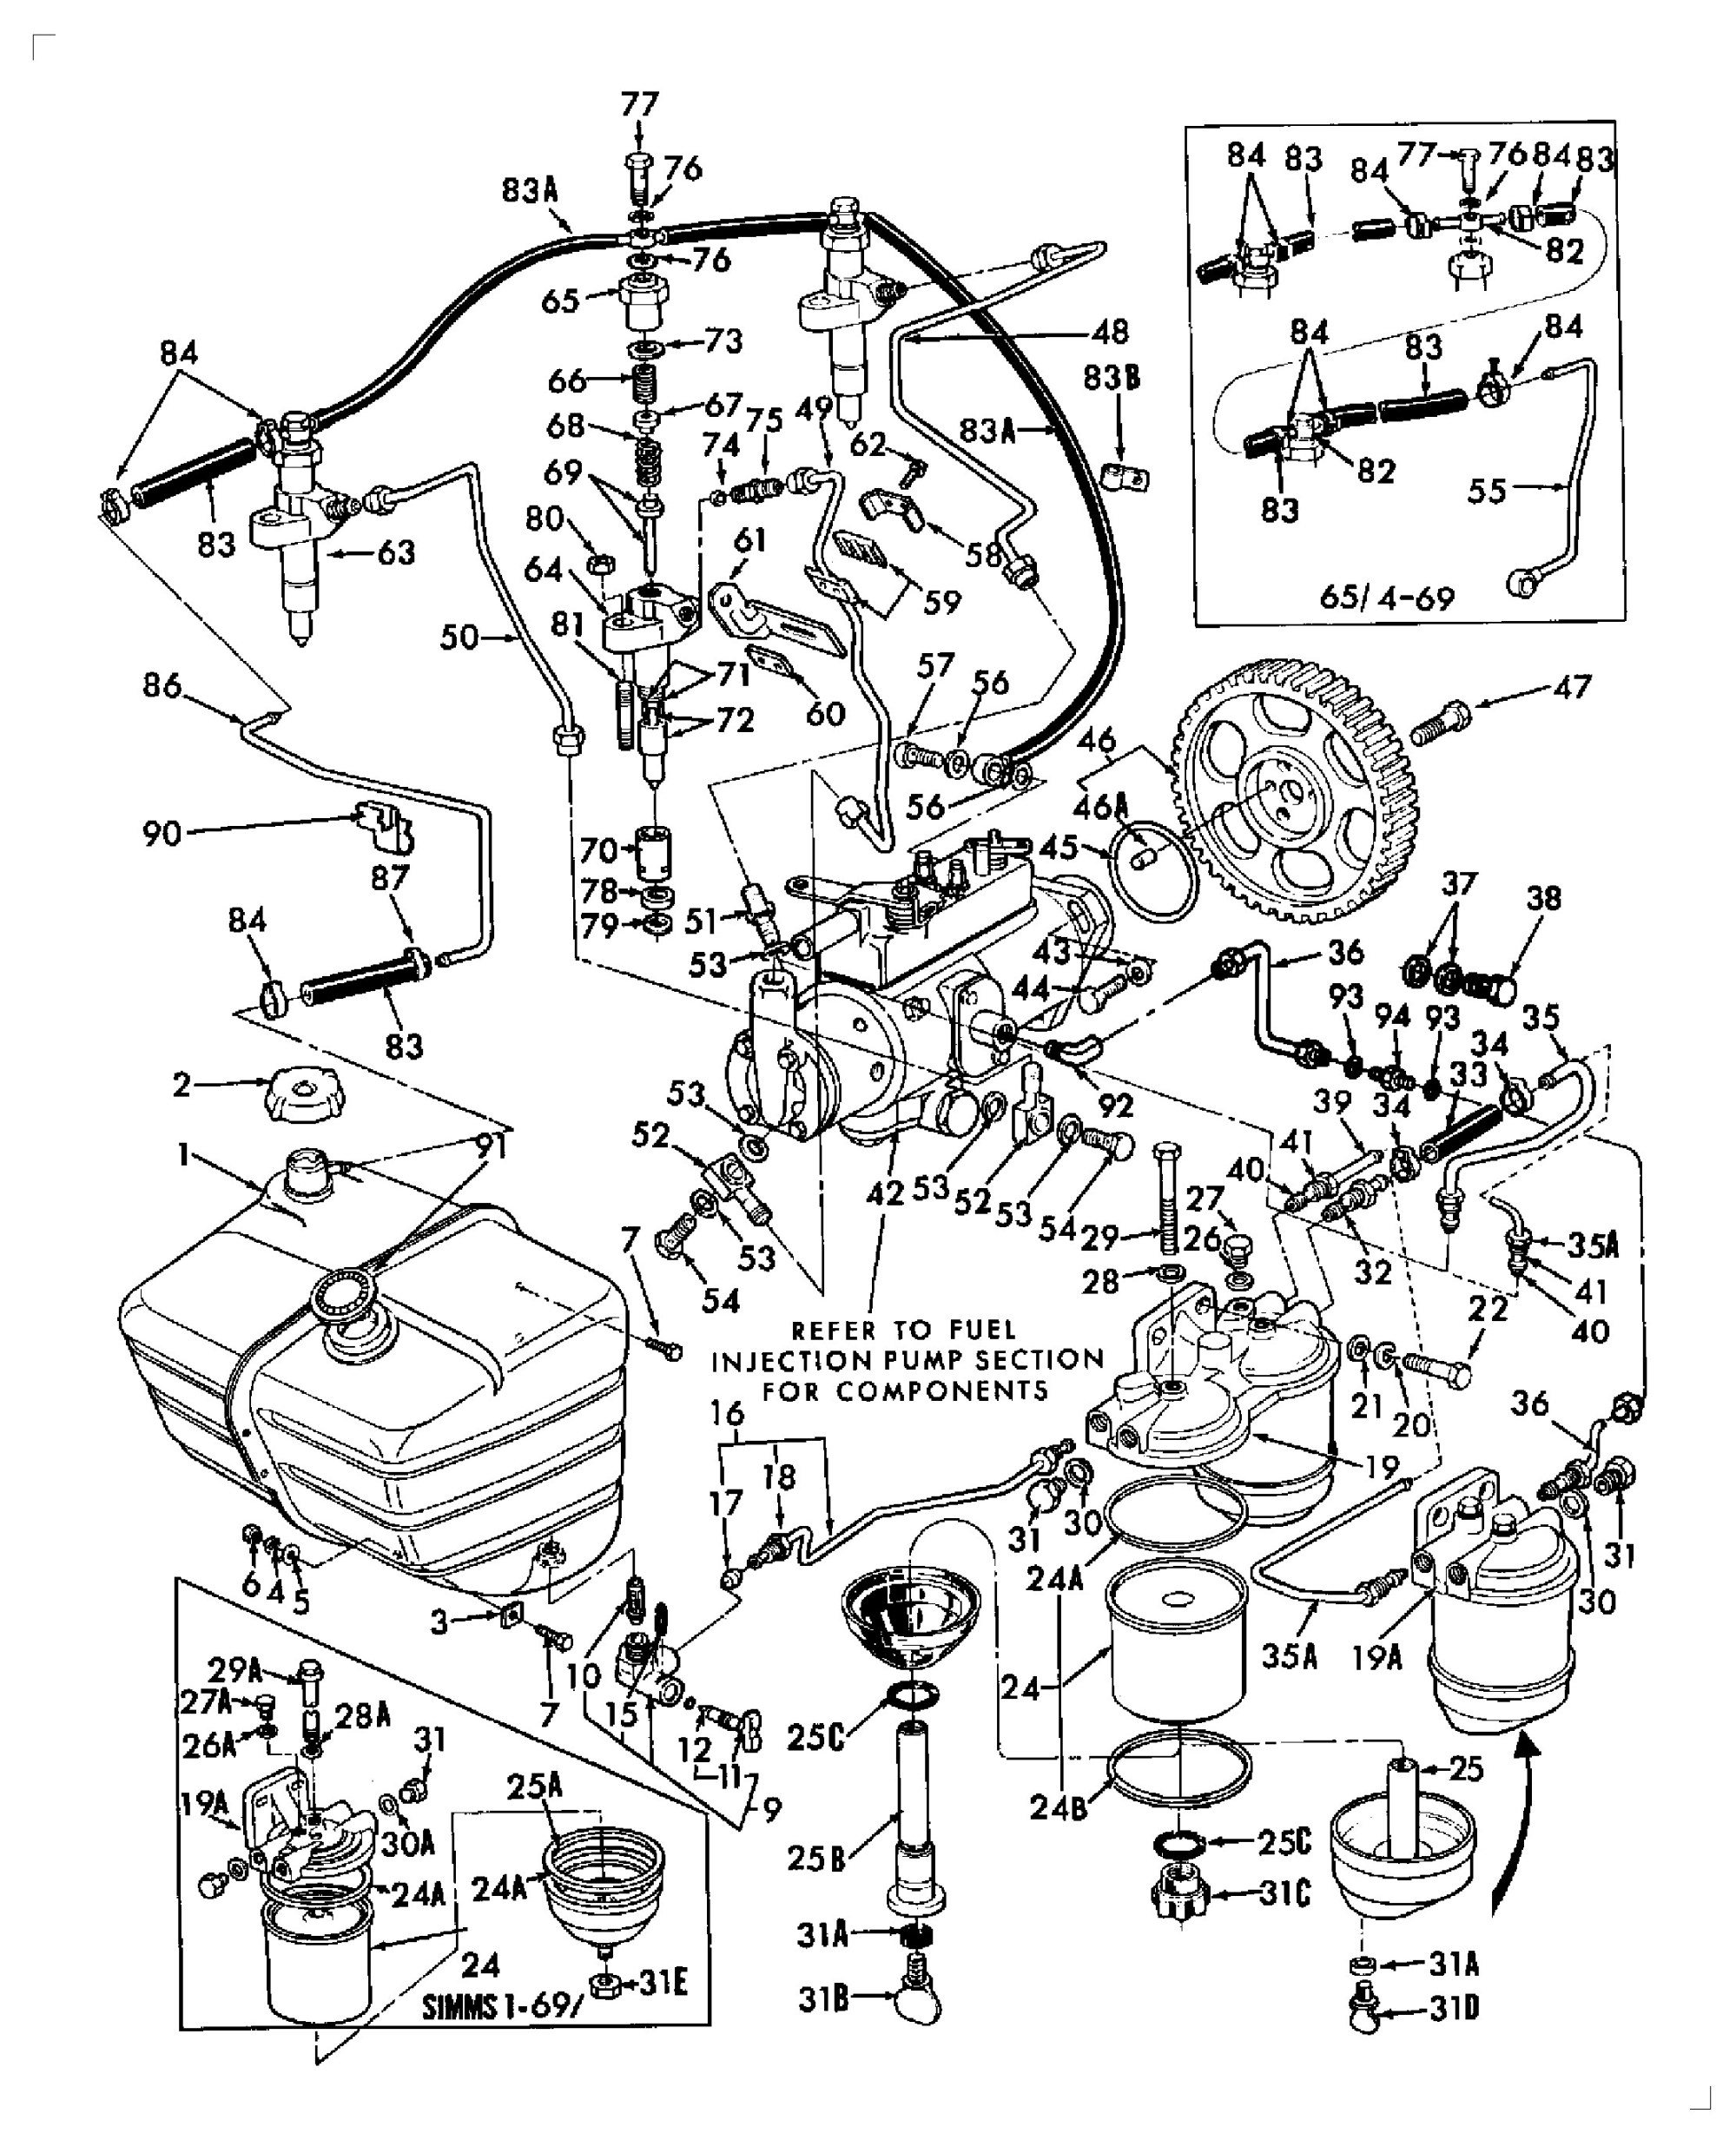 hight resolution of ford 4000 tractor parts diagrams wiring diagram for you wiring diagram for ford 4000 tractor ford